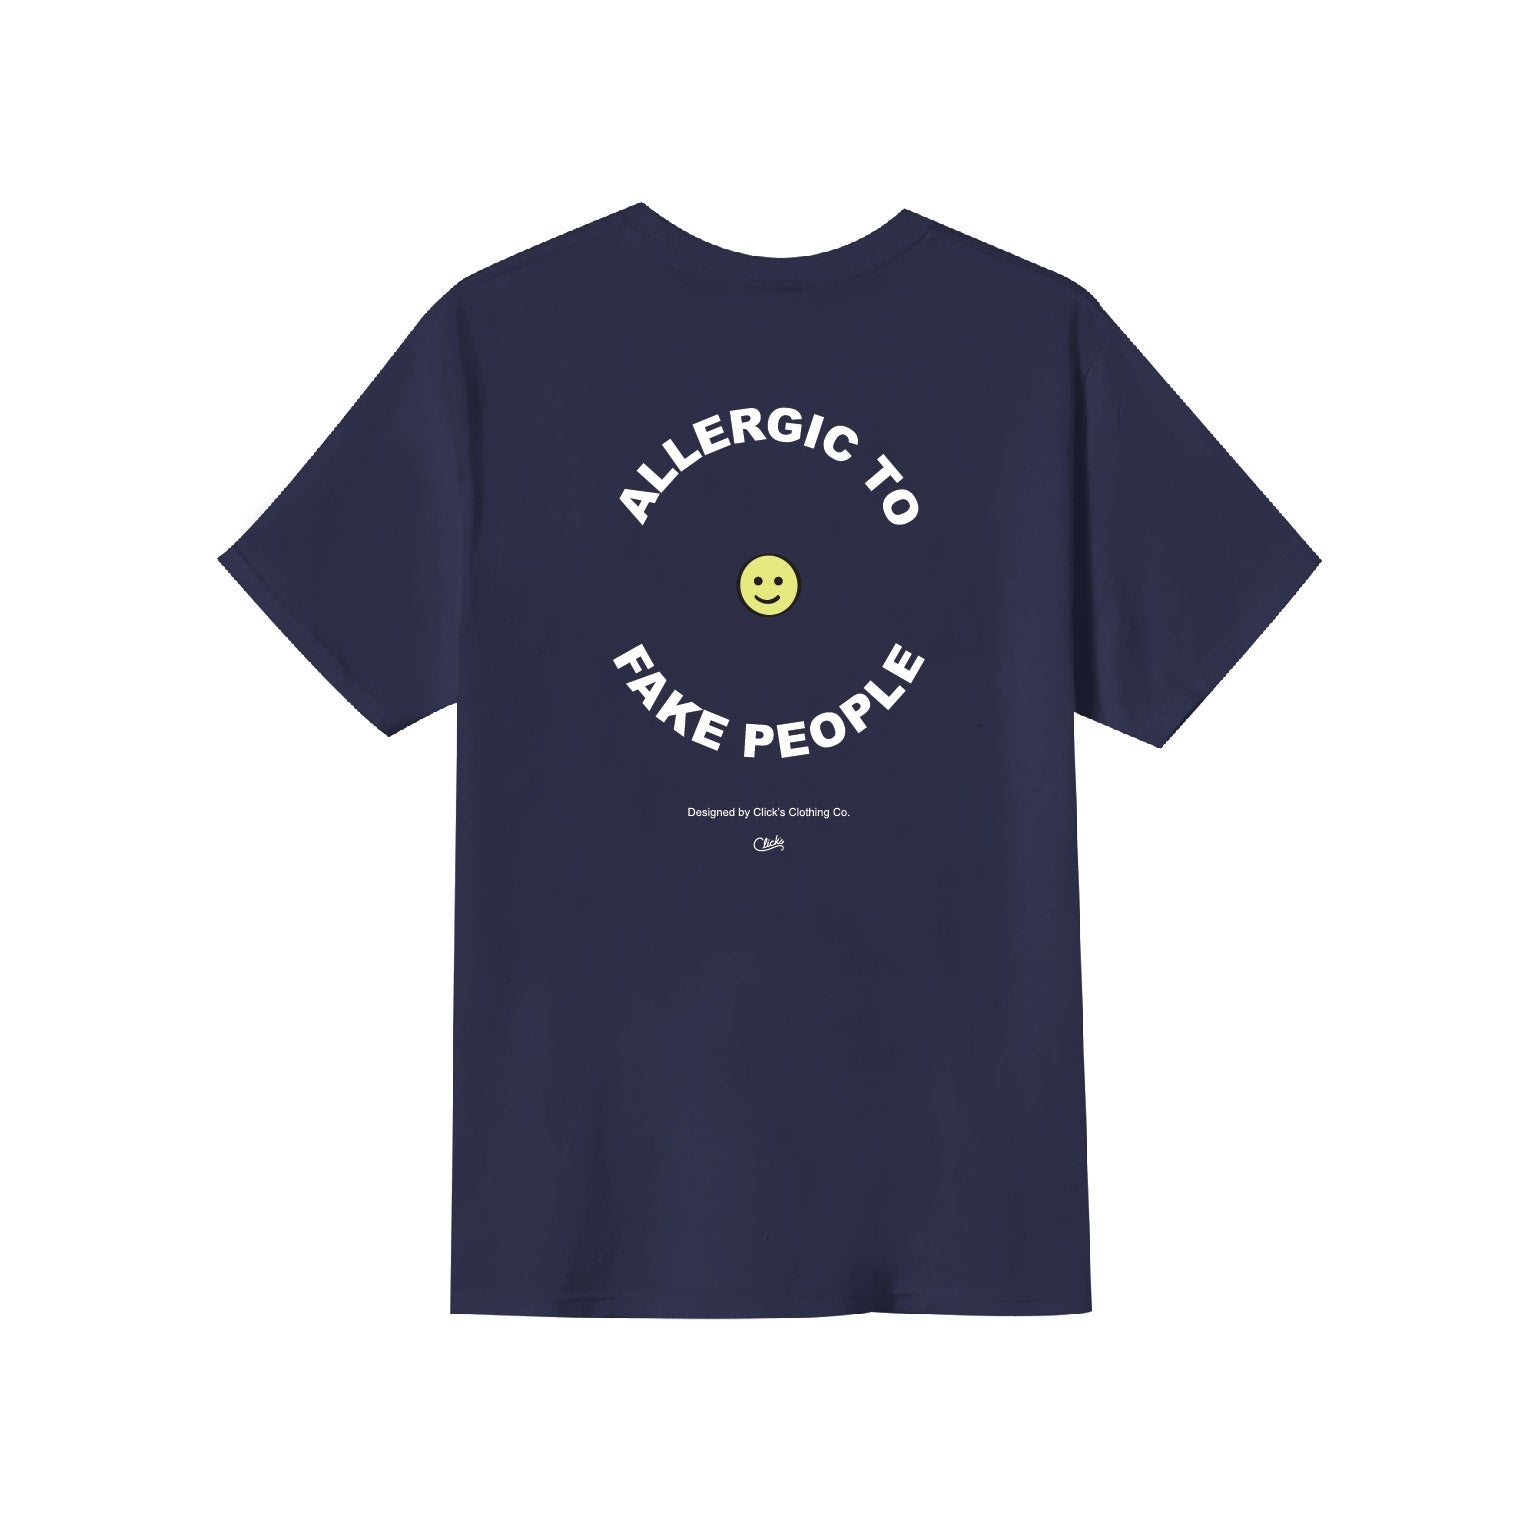 Allergy to fake people S/S Tee